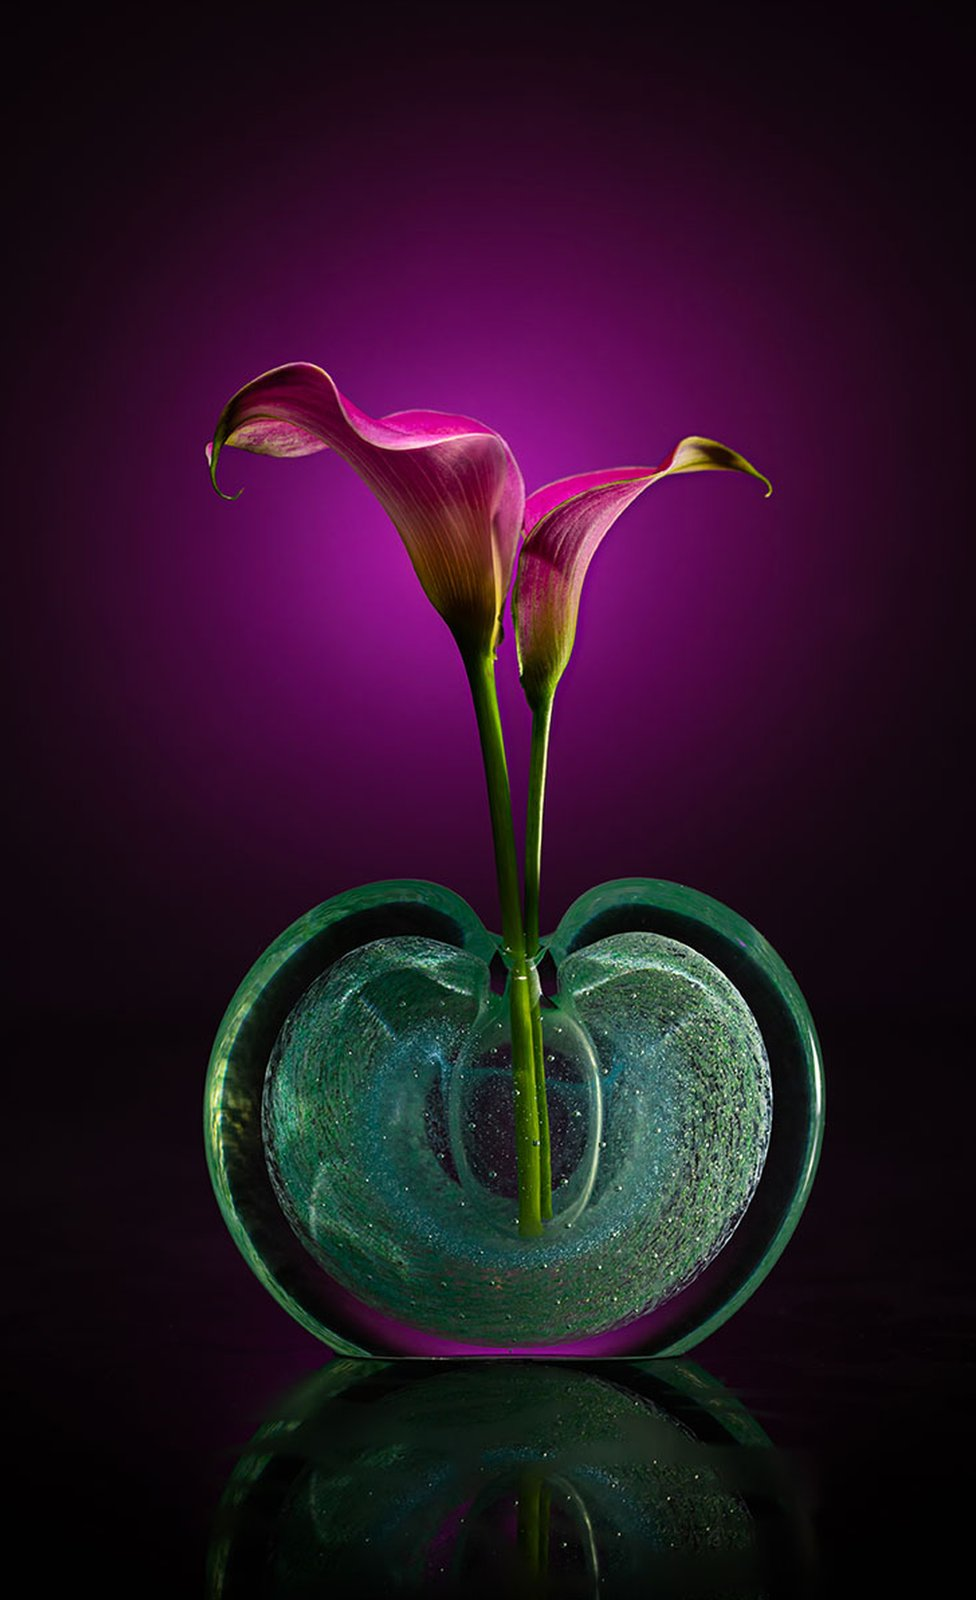 Two flowers in a perfume bottle with a dark purple background